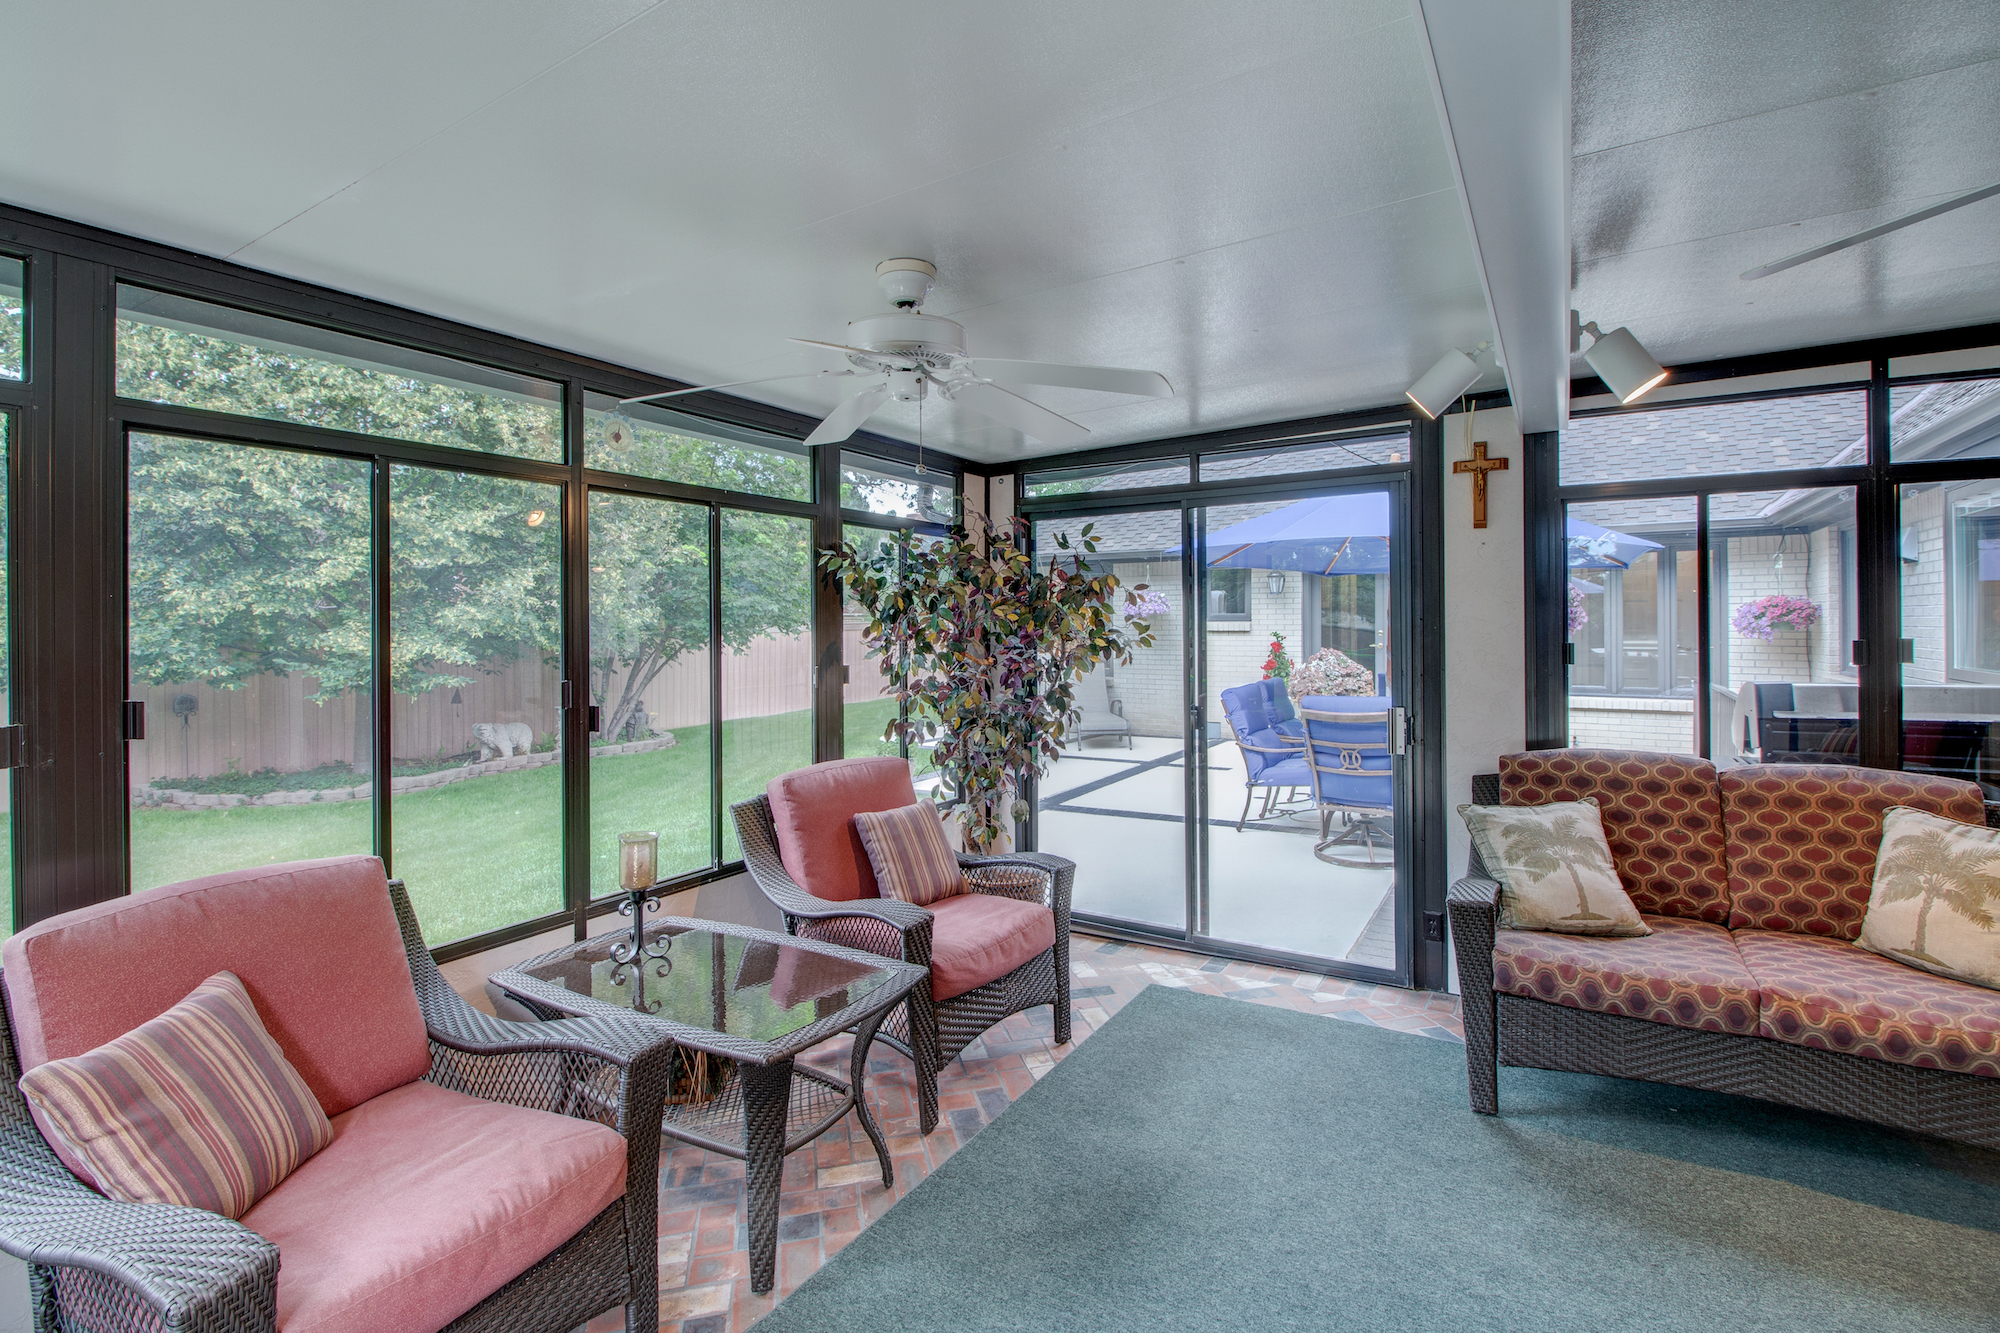 10-On the right sunroom opens to fabulous patio.jpg